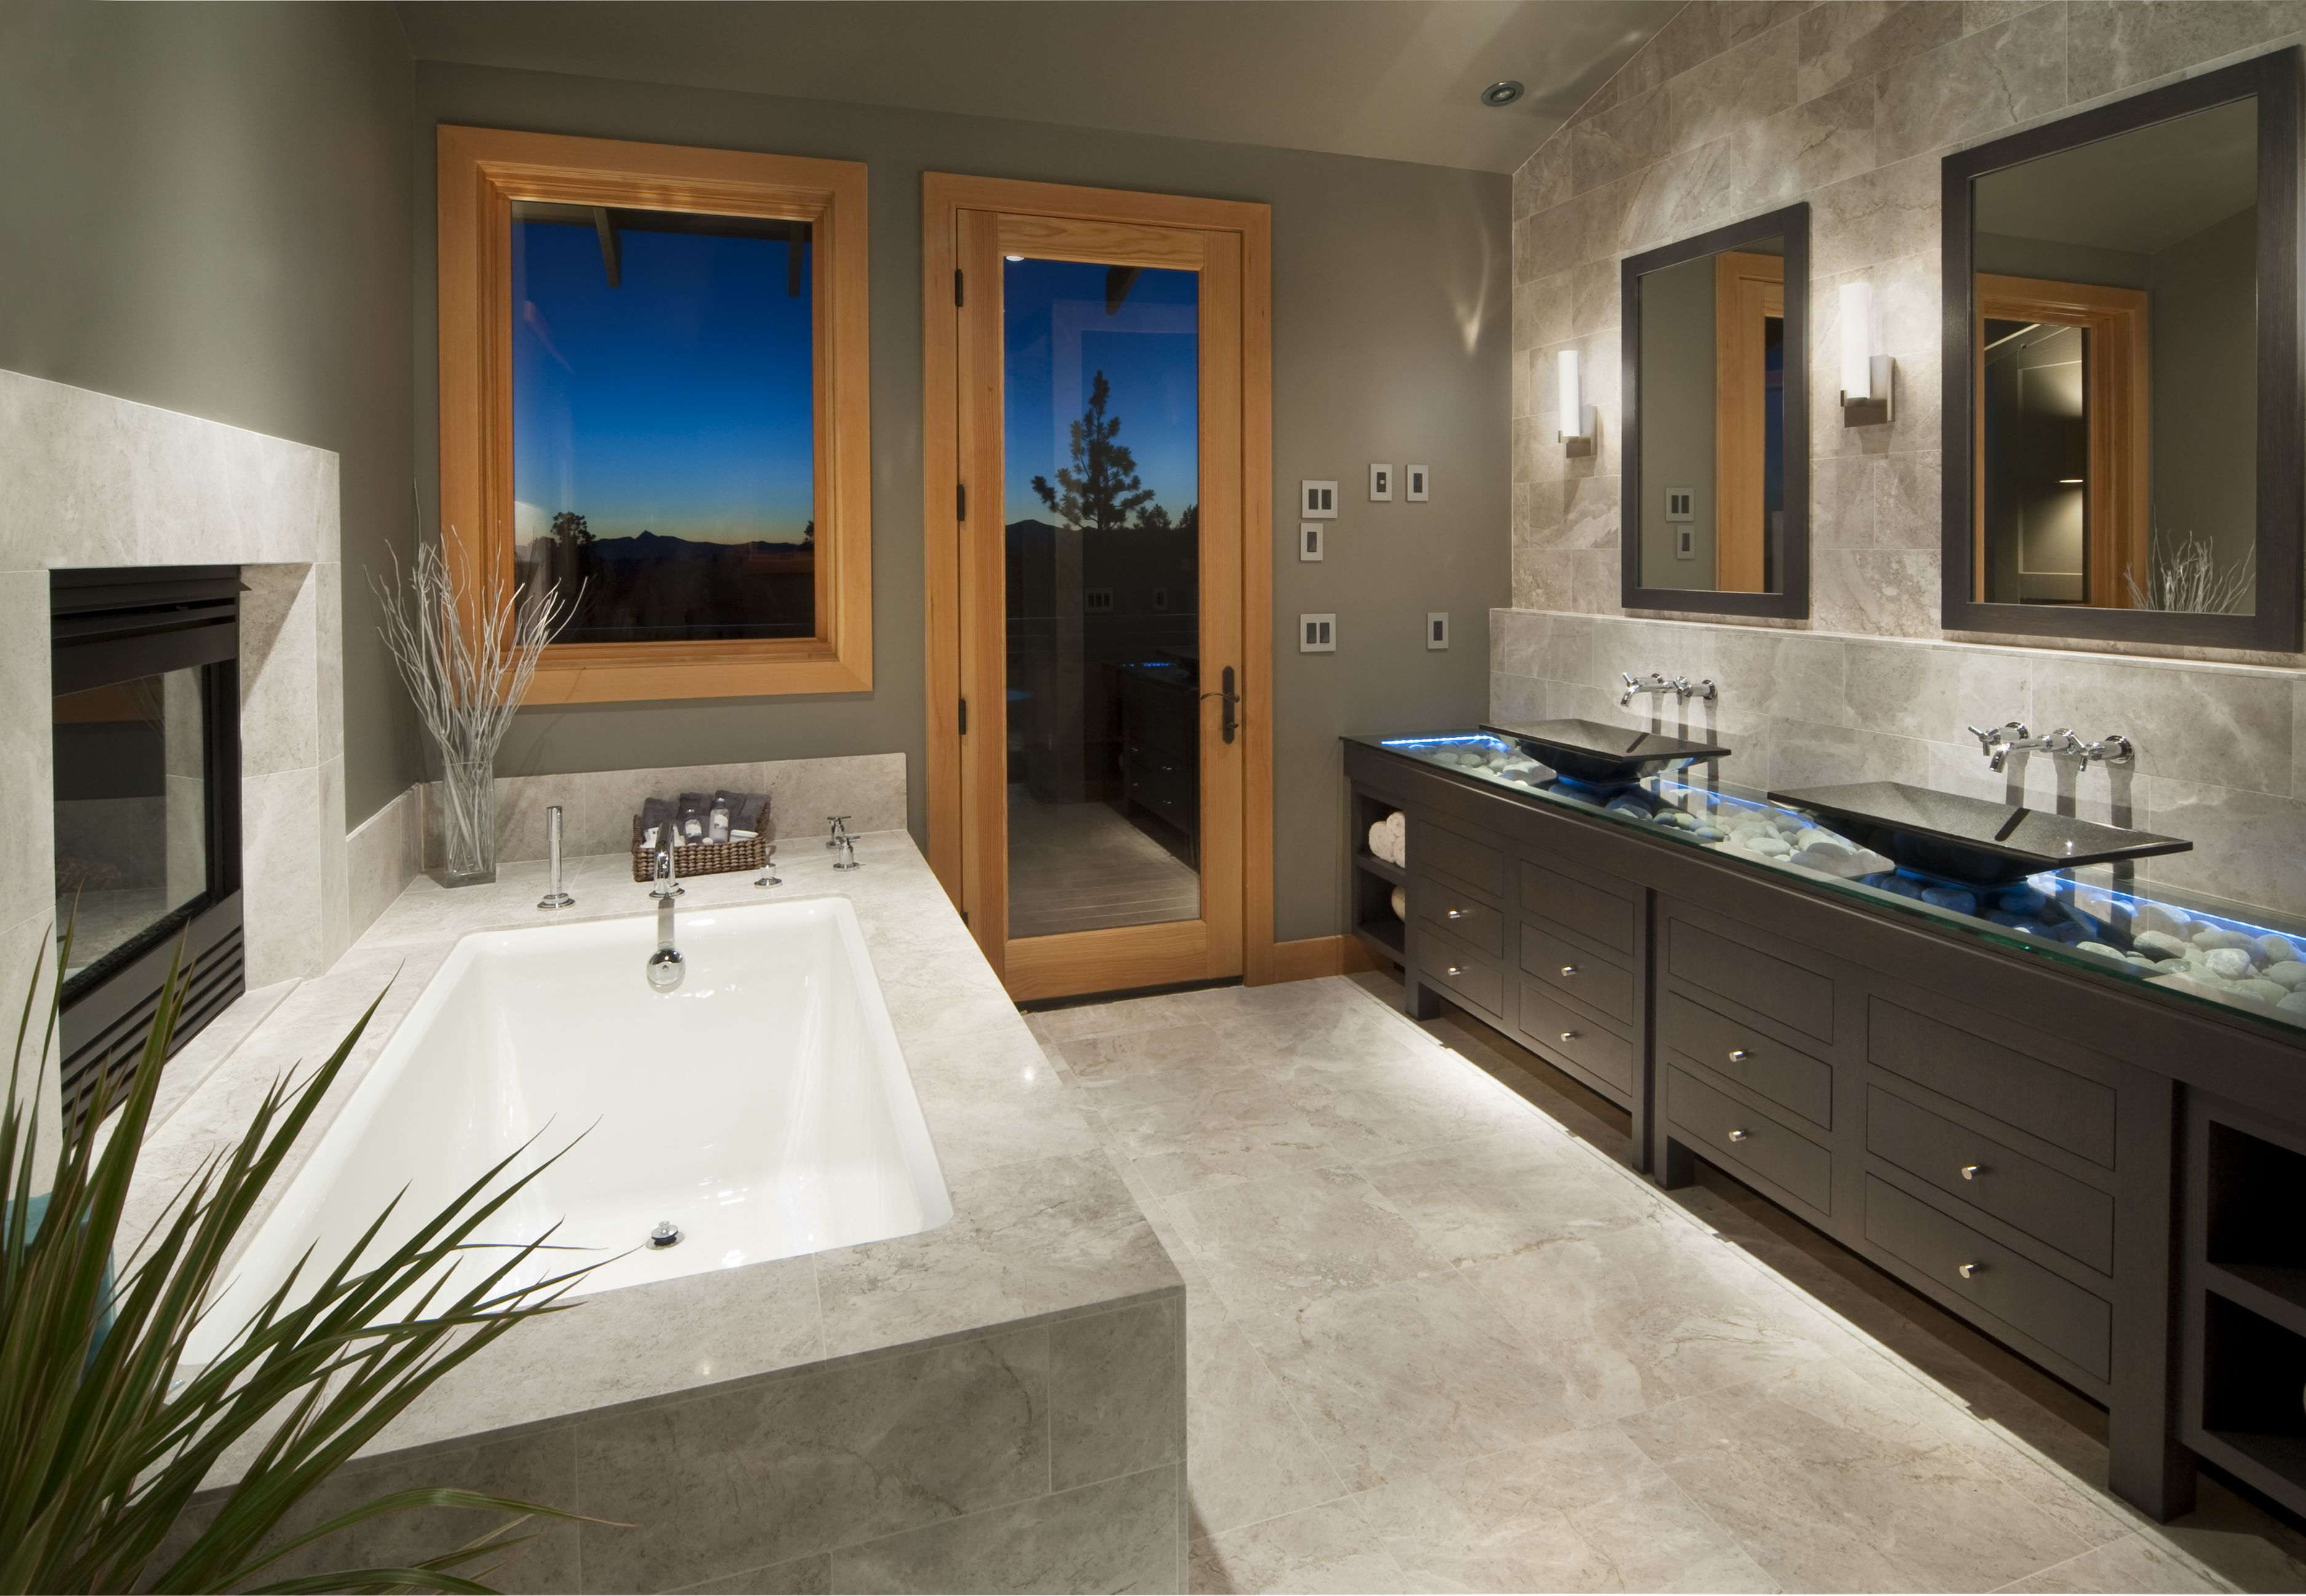 Bathroom Space Planning For Toilets Sinks And Counters